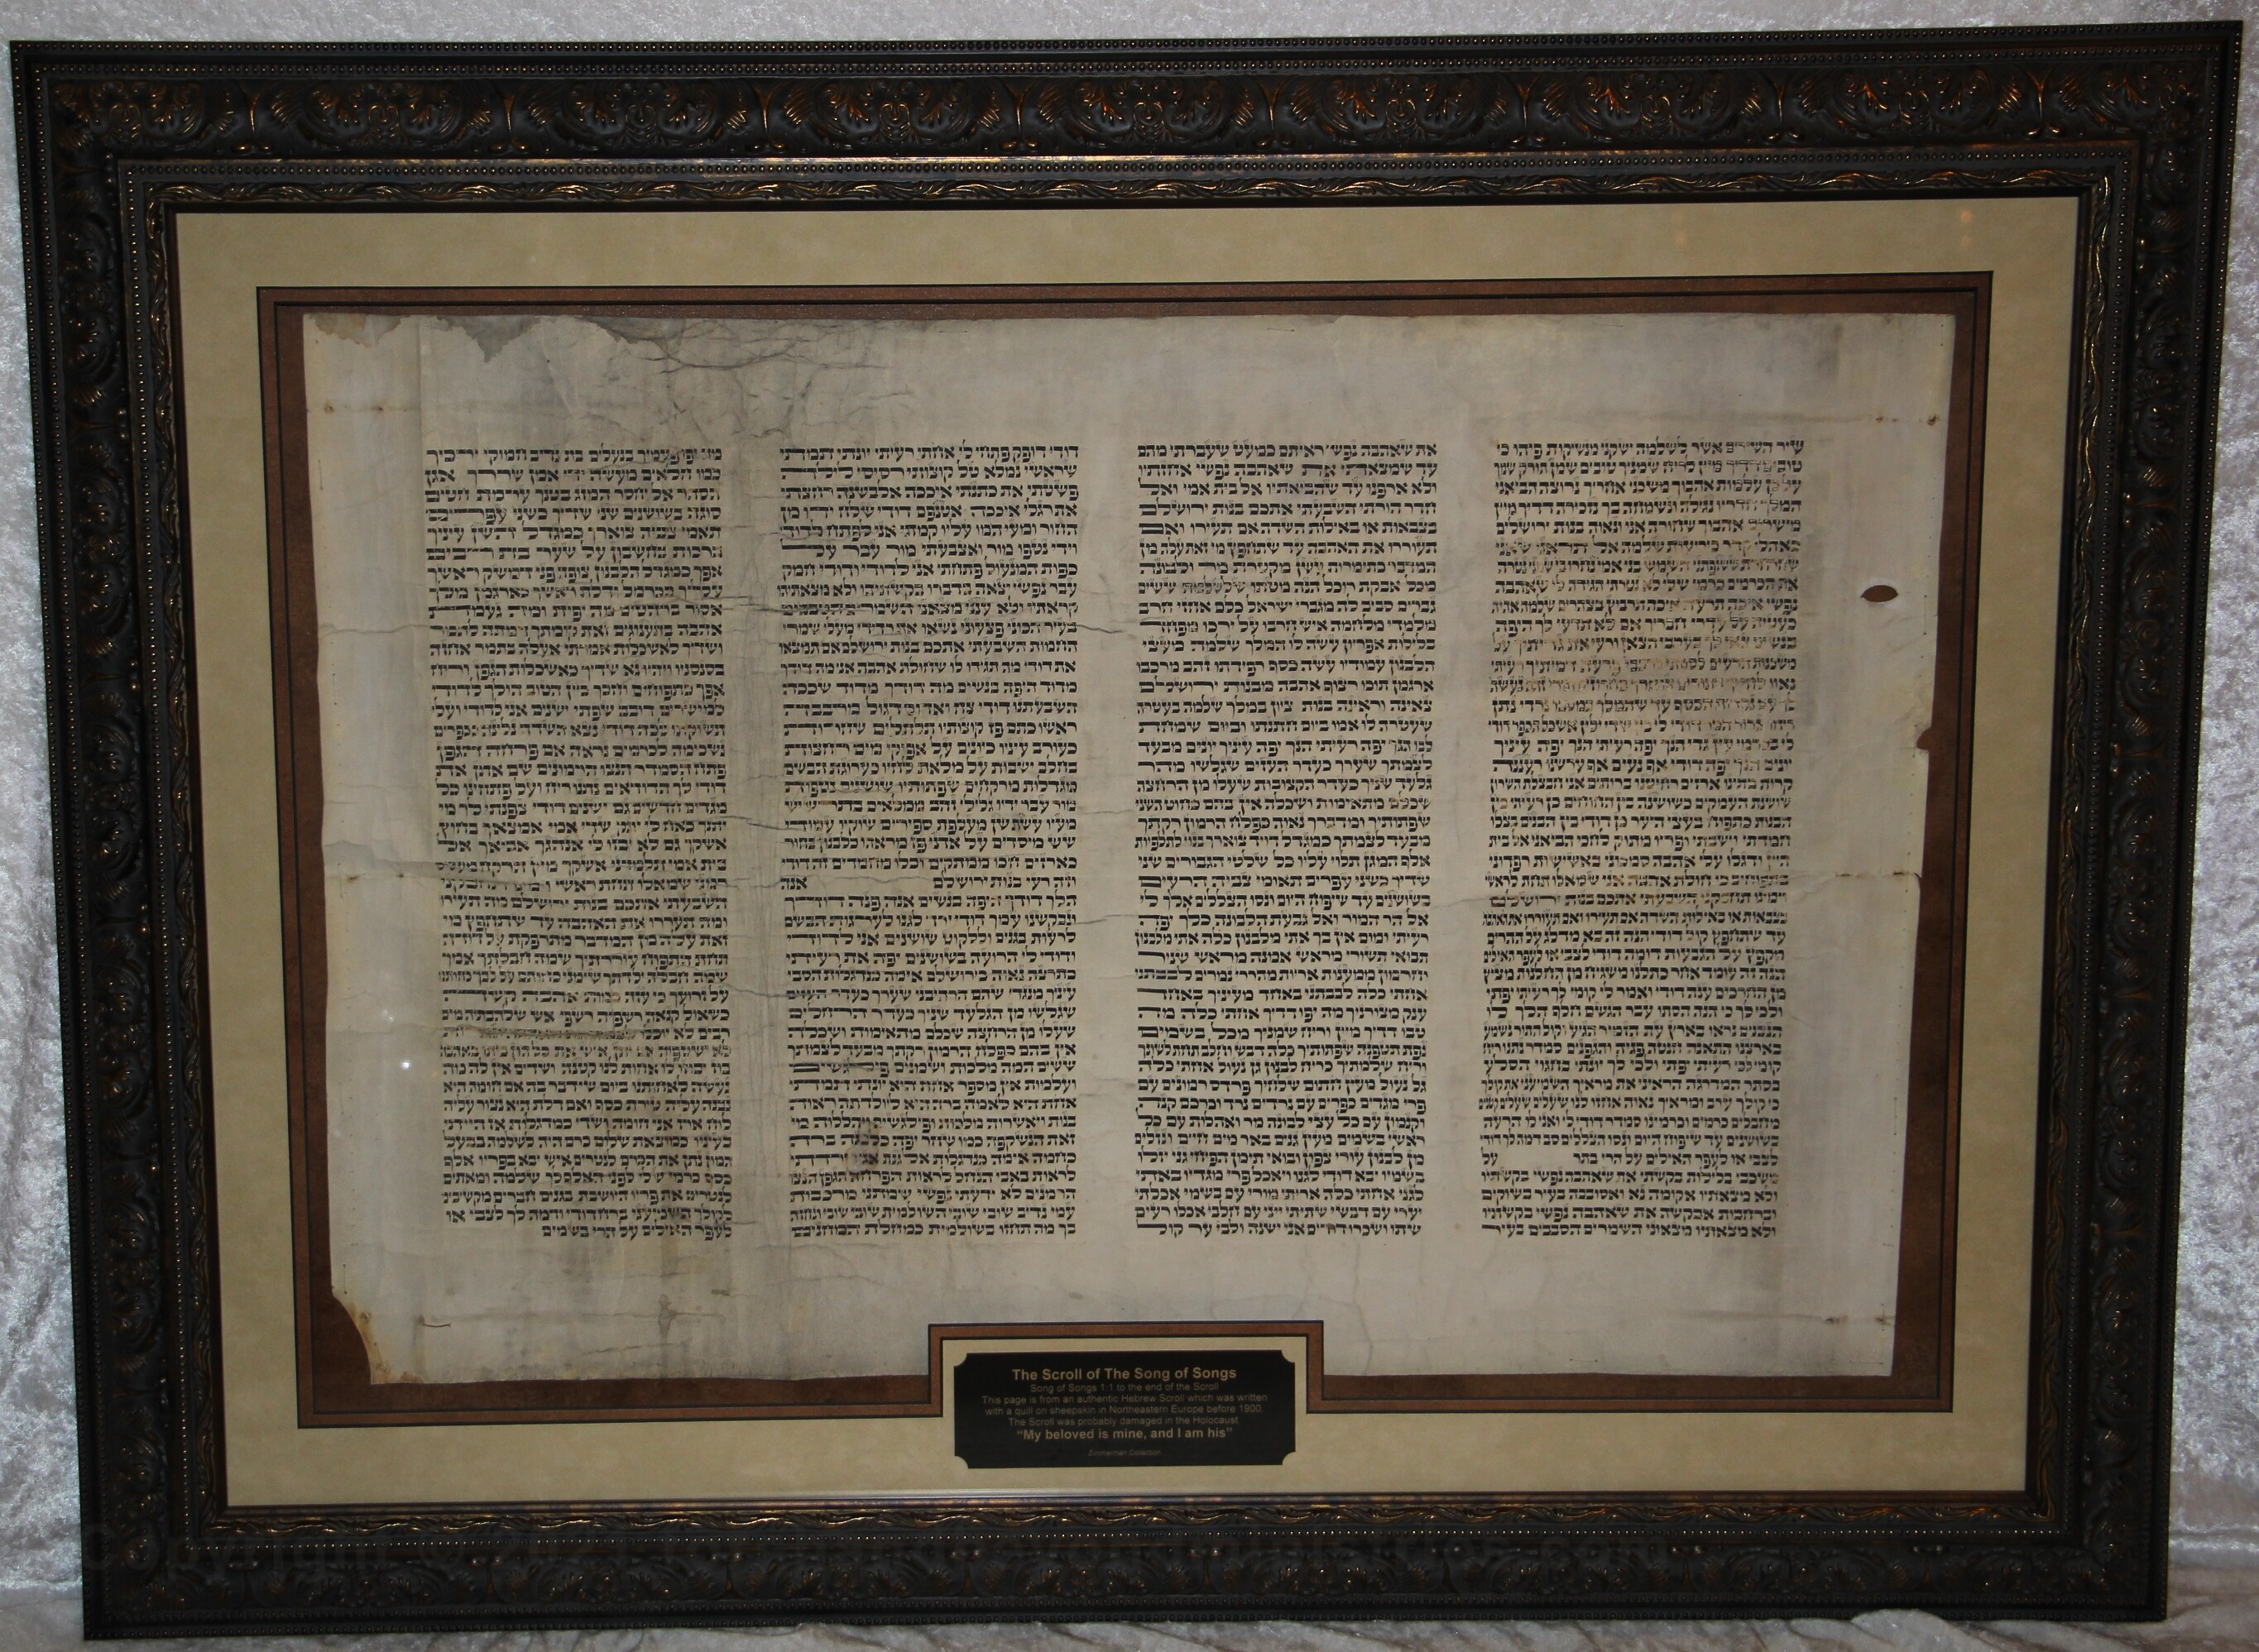 Song of Songs Entire Scroll - Written in Northeastern Europe on sheepskin before the 20th Century